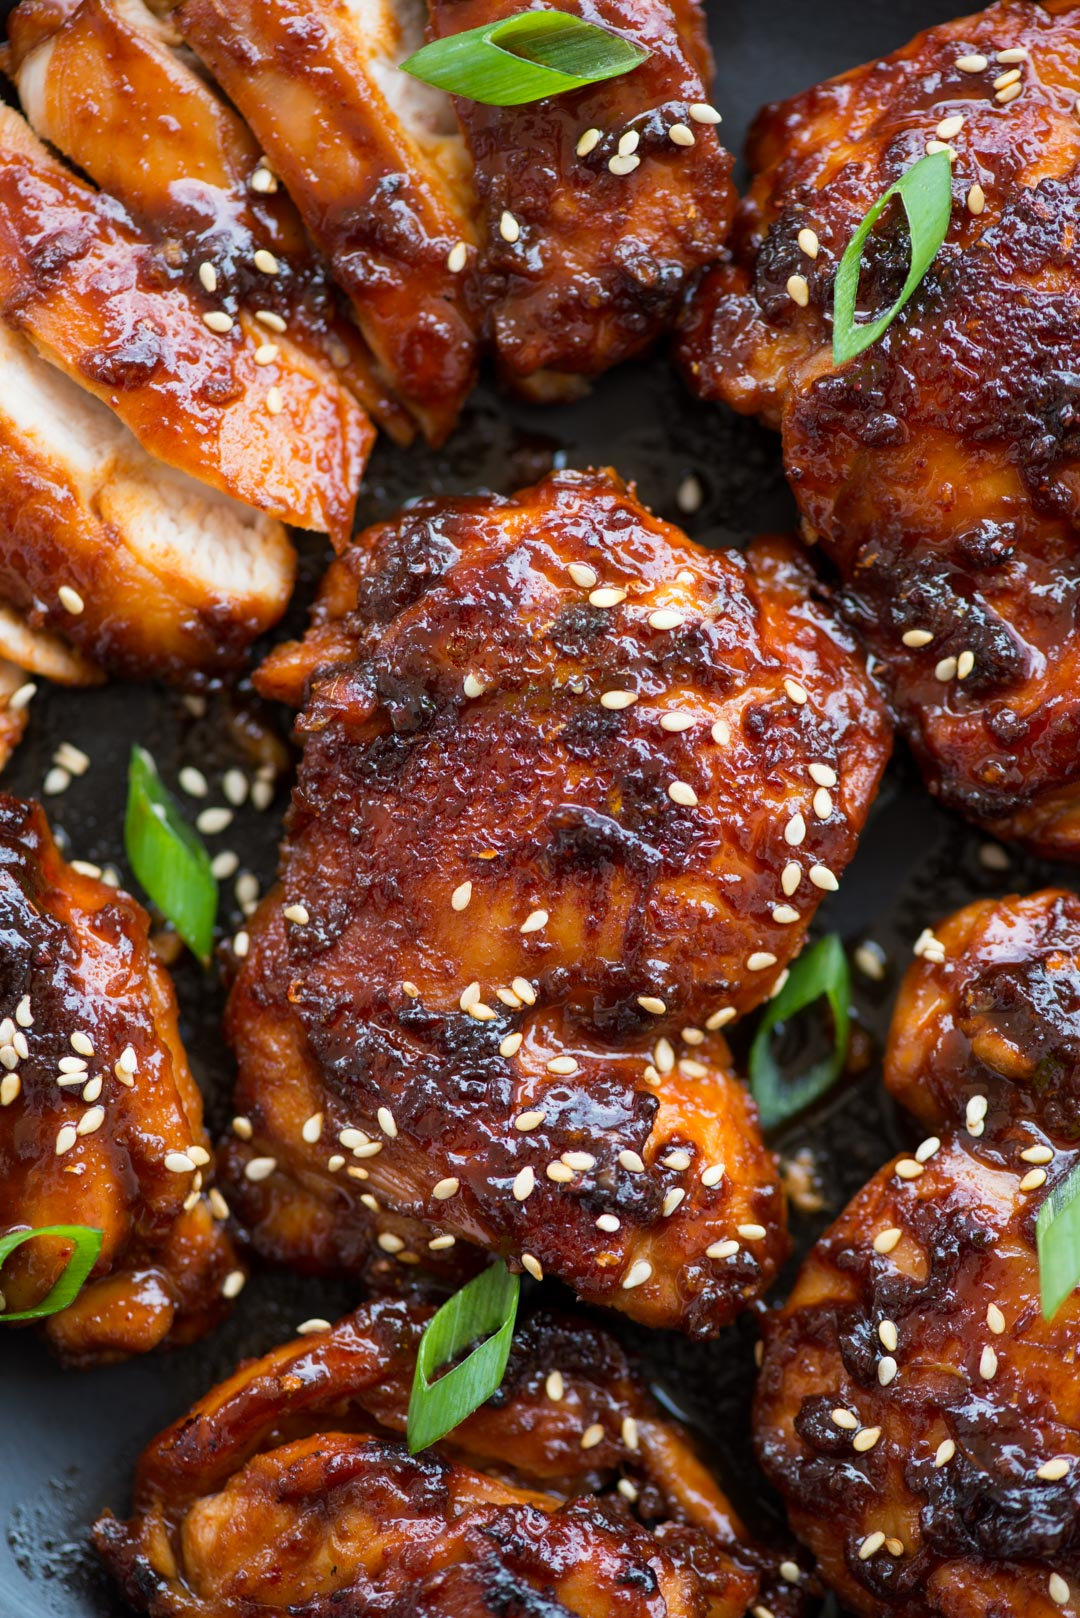 Korean Chicken made with Gochujang, soy sauce based marinade is bold in flavours and really easy to make. Chicken thigs coated in a sticky sweet and spicy sauce and cooked until juicy.